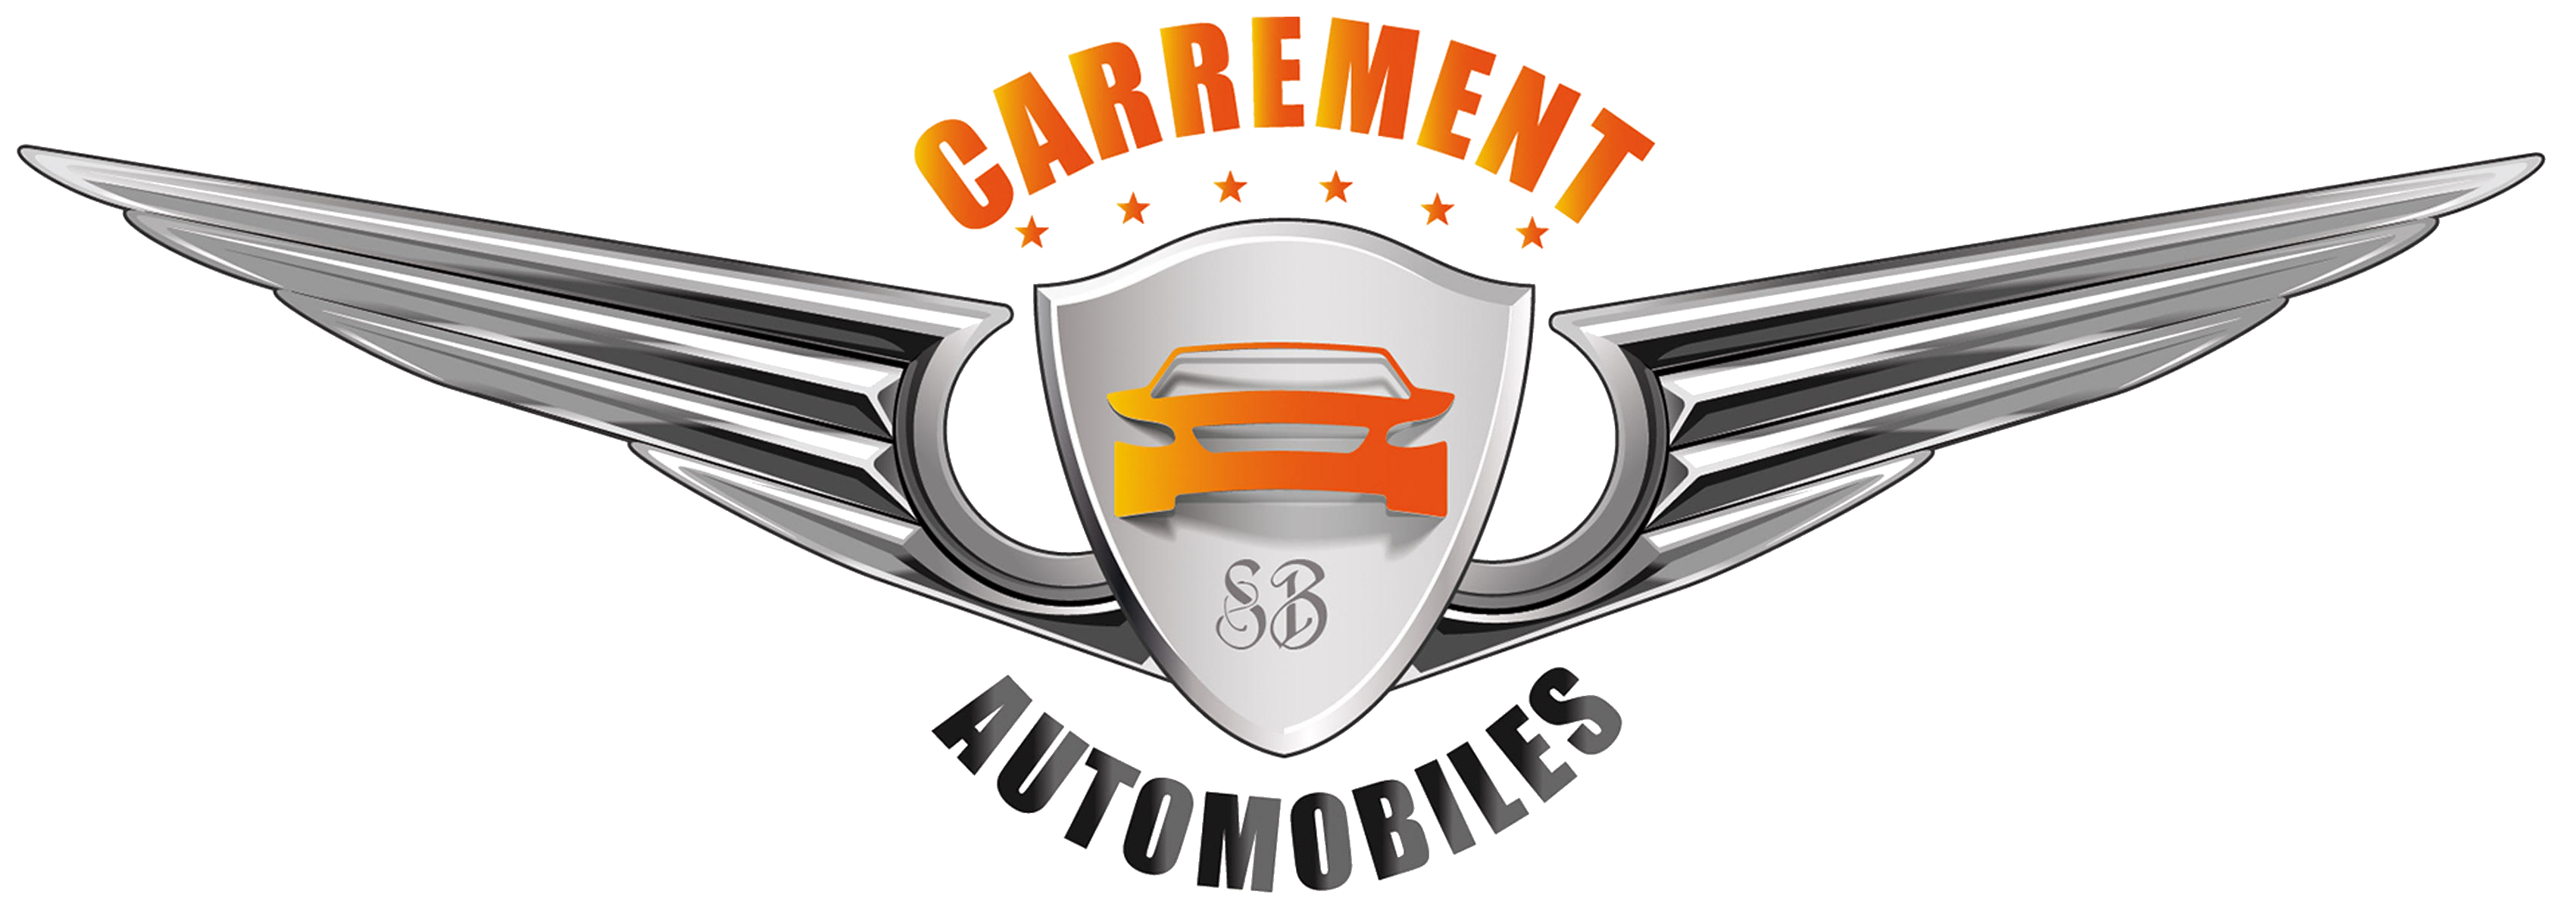 Carrément Automobiles